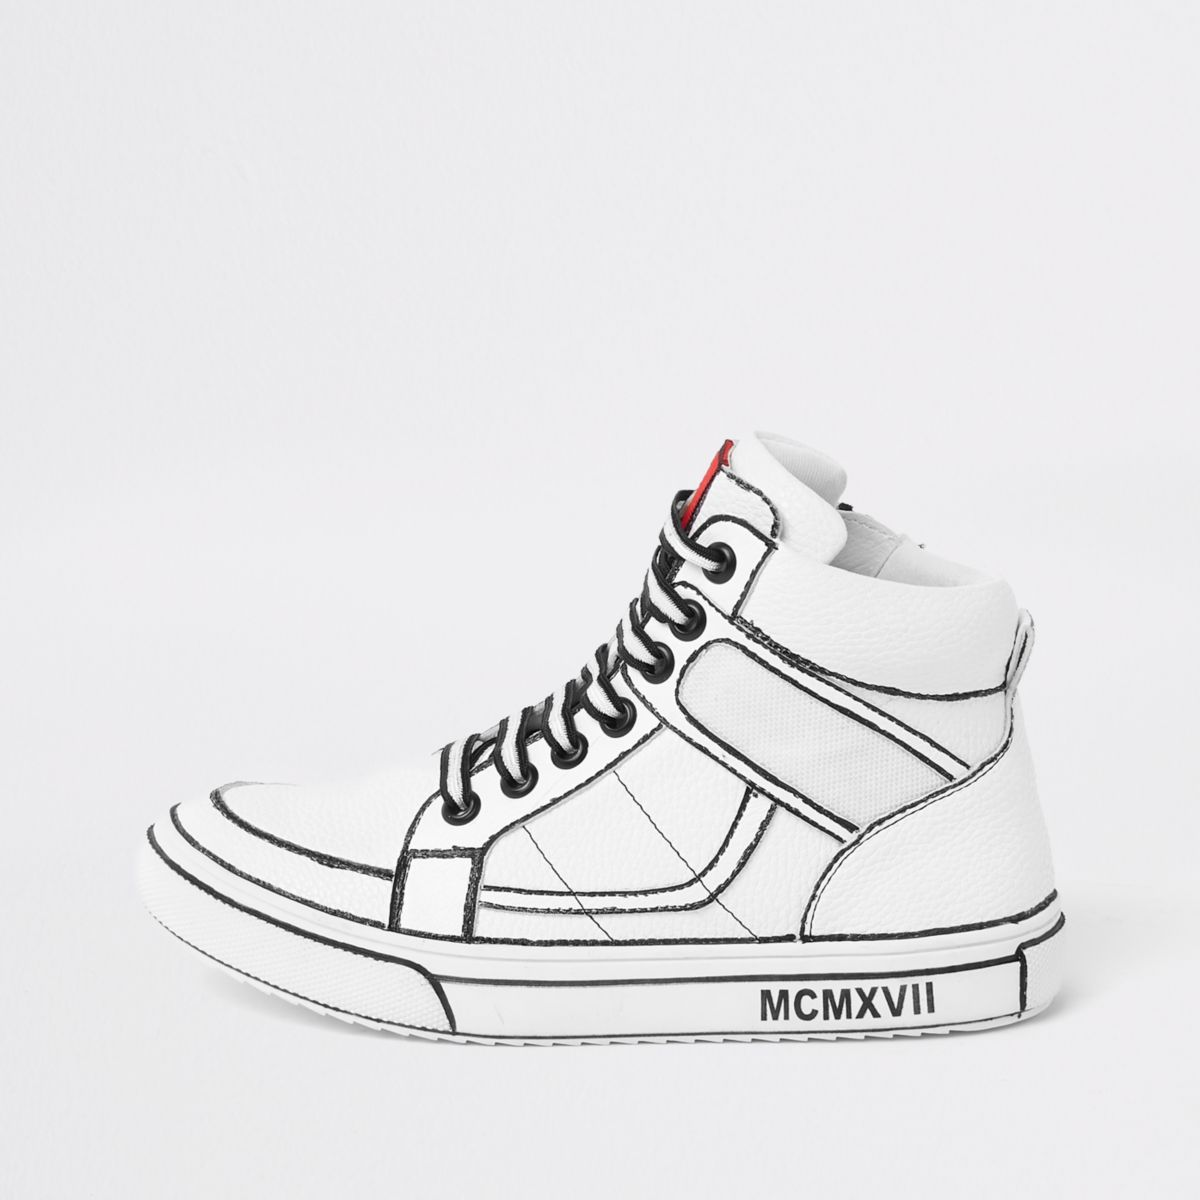 Boys white drawn-on high top sneakers